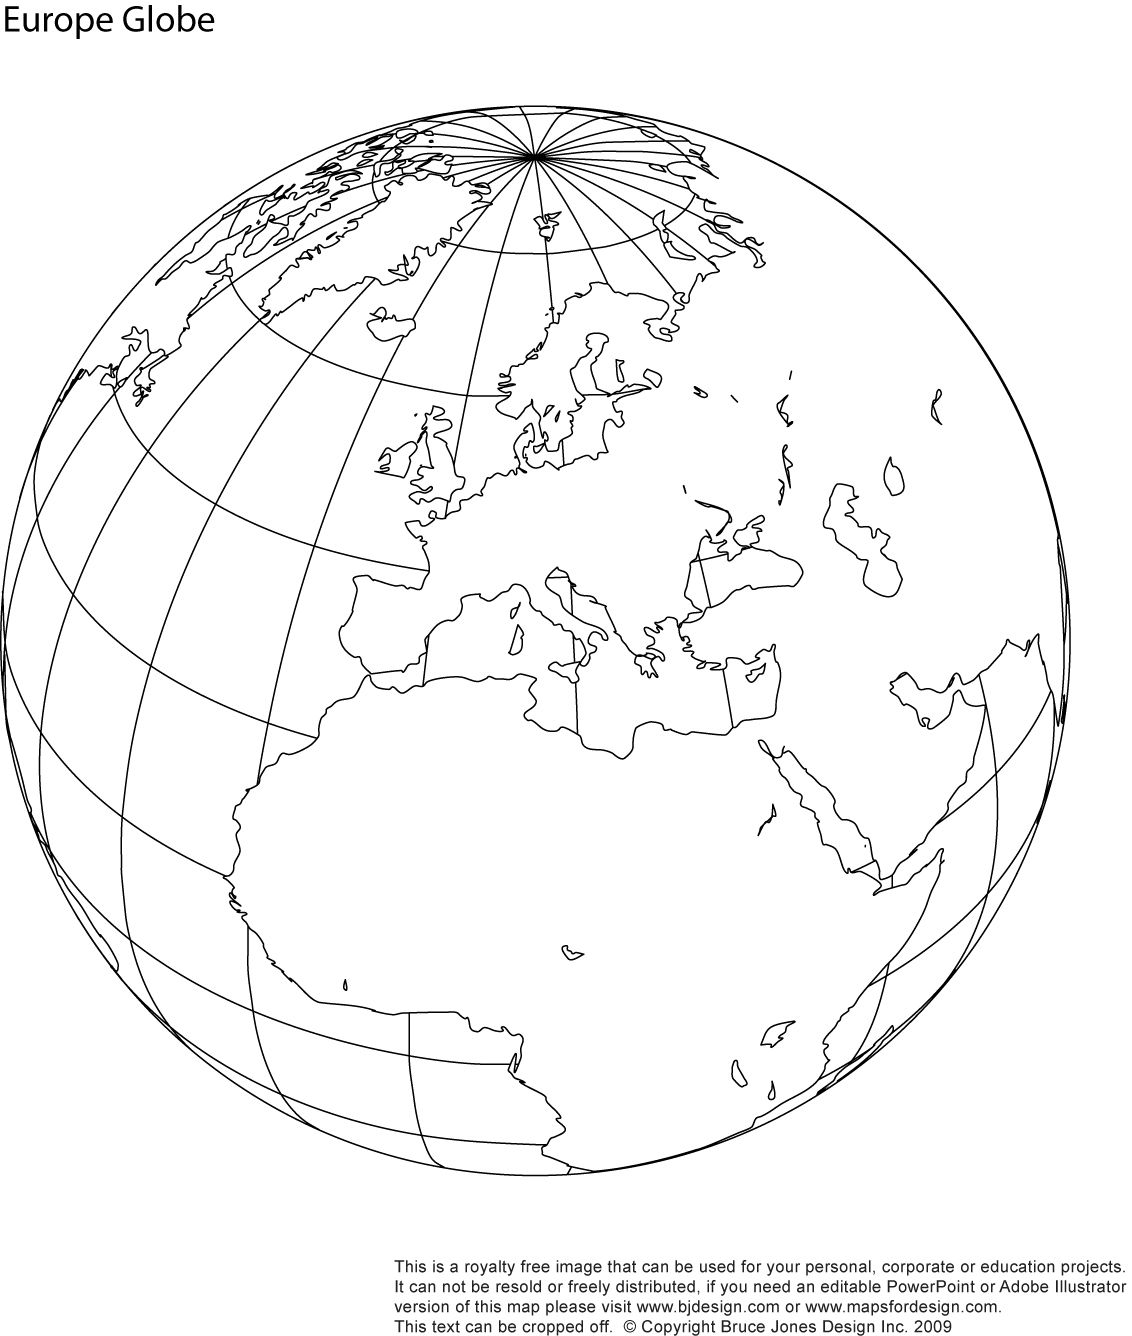 Line Drawing North America : World globe showing north america download and use for